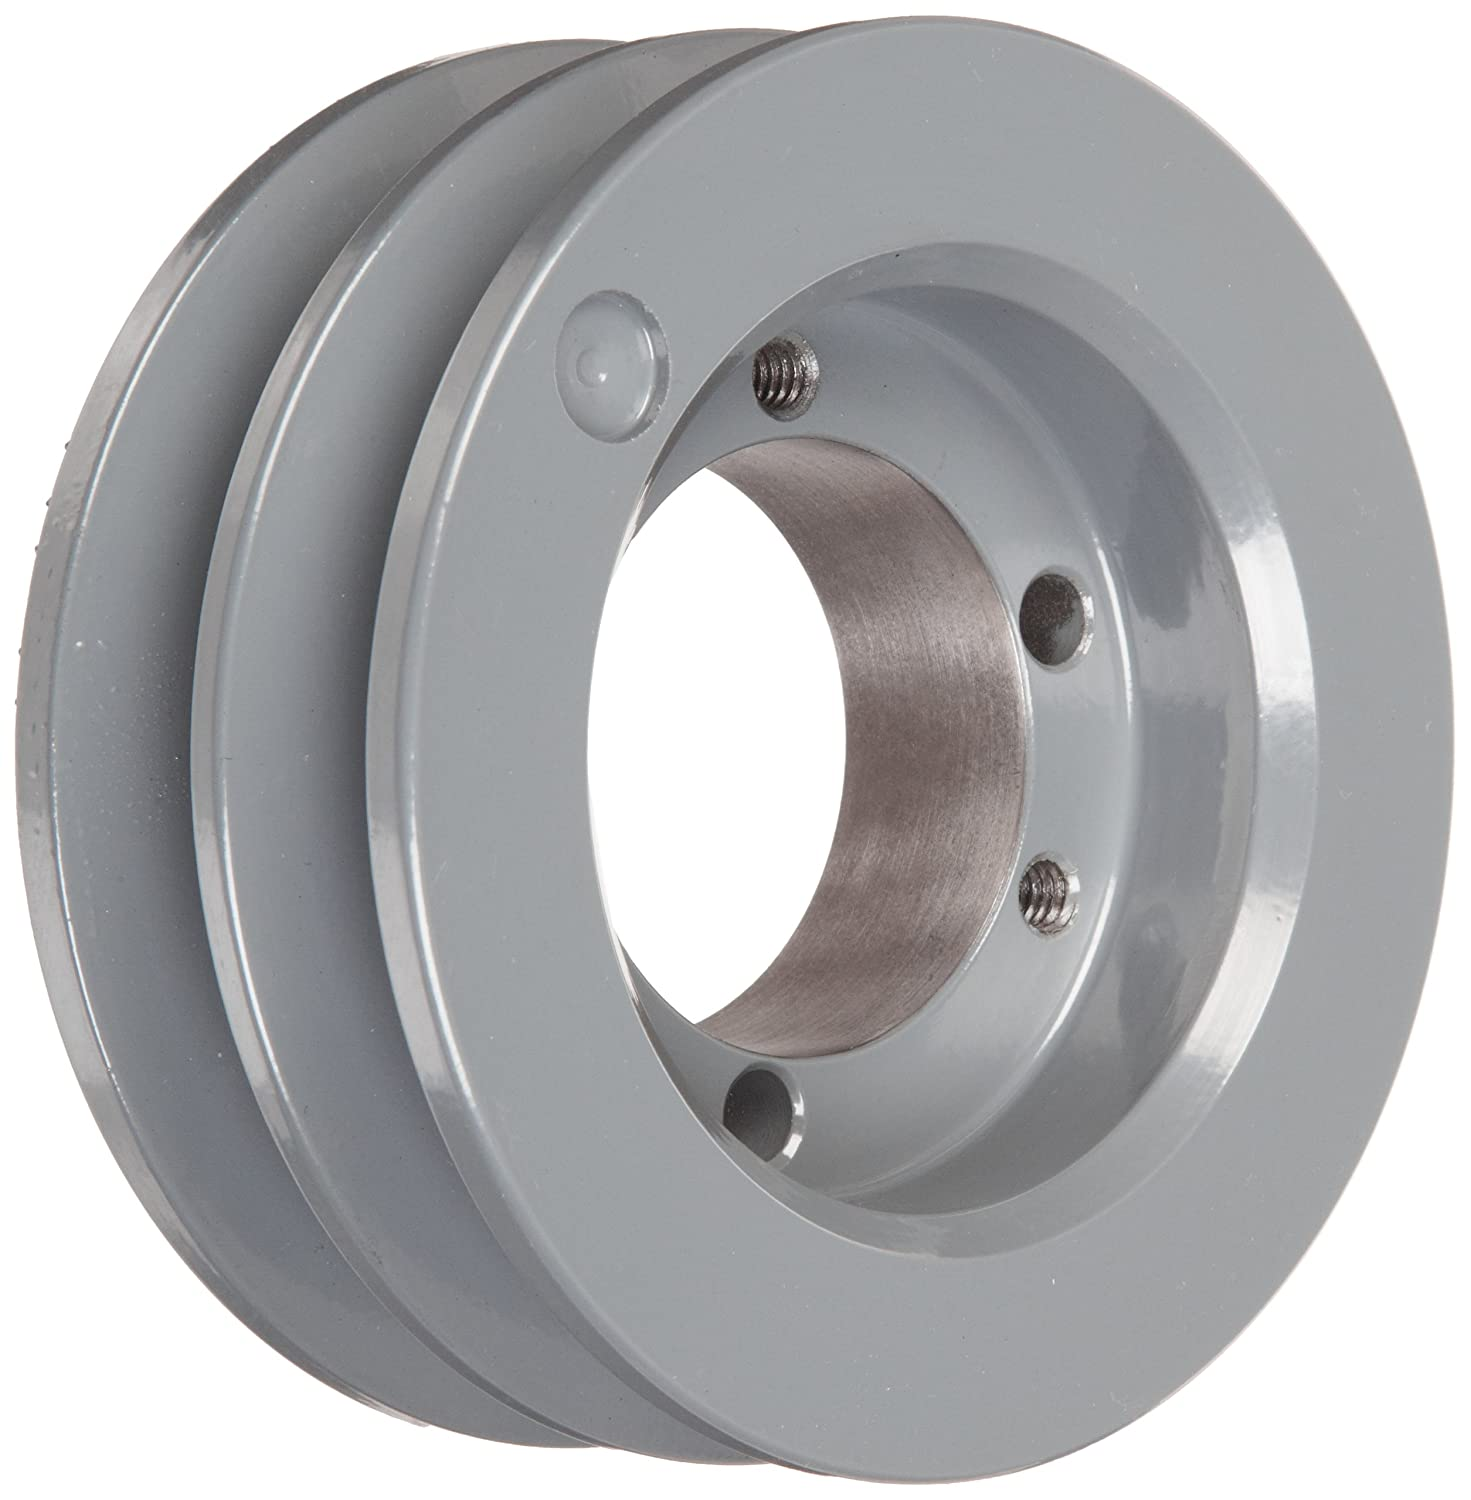 TB Woods 562B Classical V Belt Sheave B Belt Section 2 Grooves SDS Bushing required Cast Iron 5.95 OD